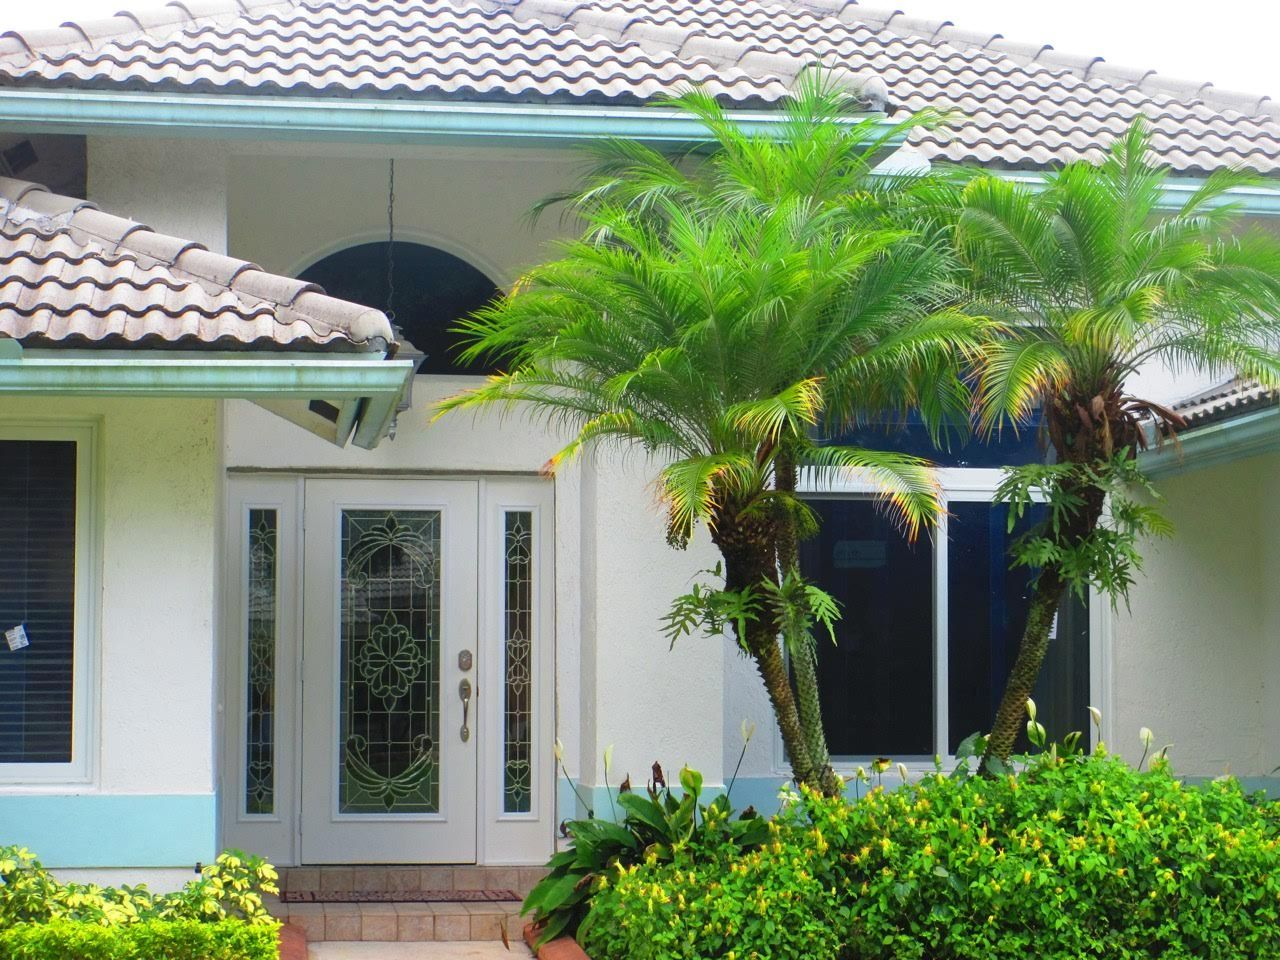 Window and Door Installation in Pompano Beach, FL - High End ...